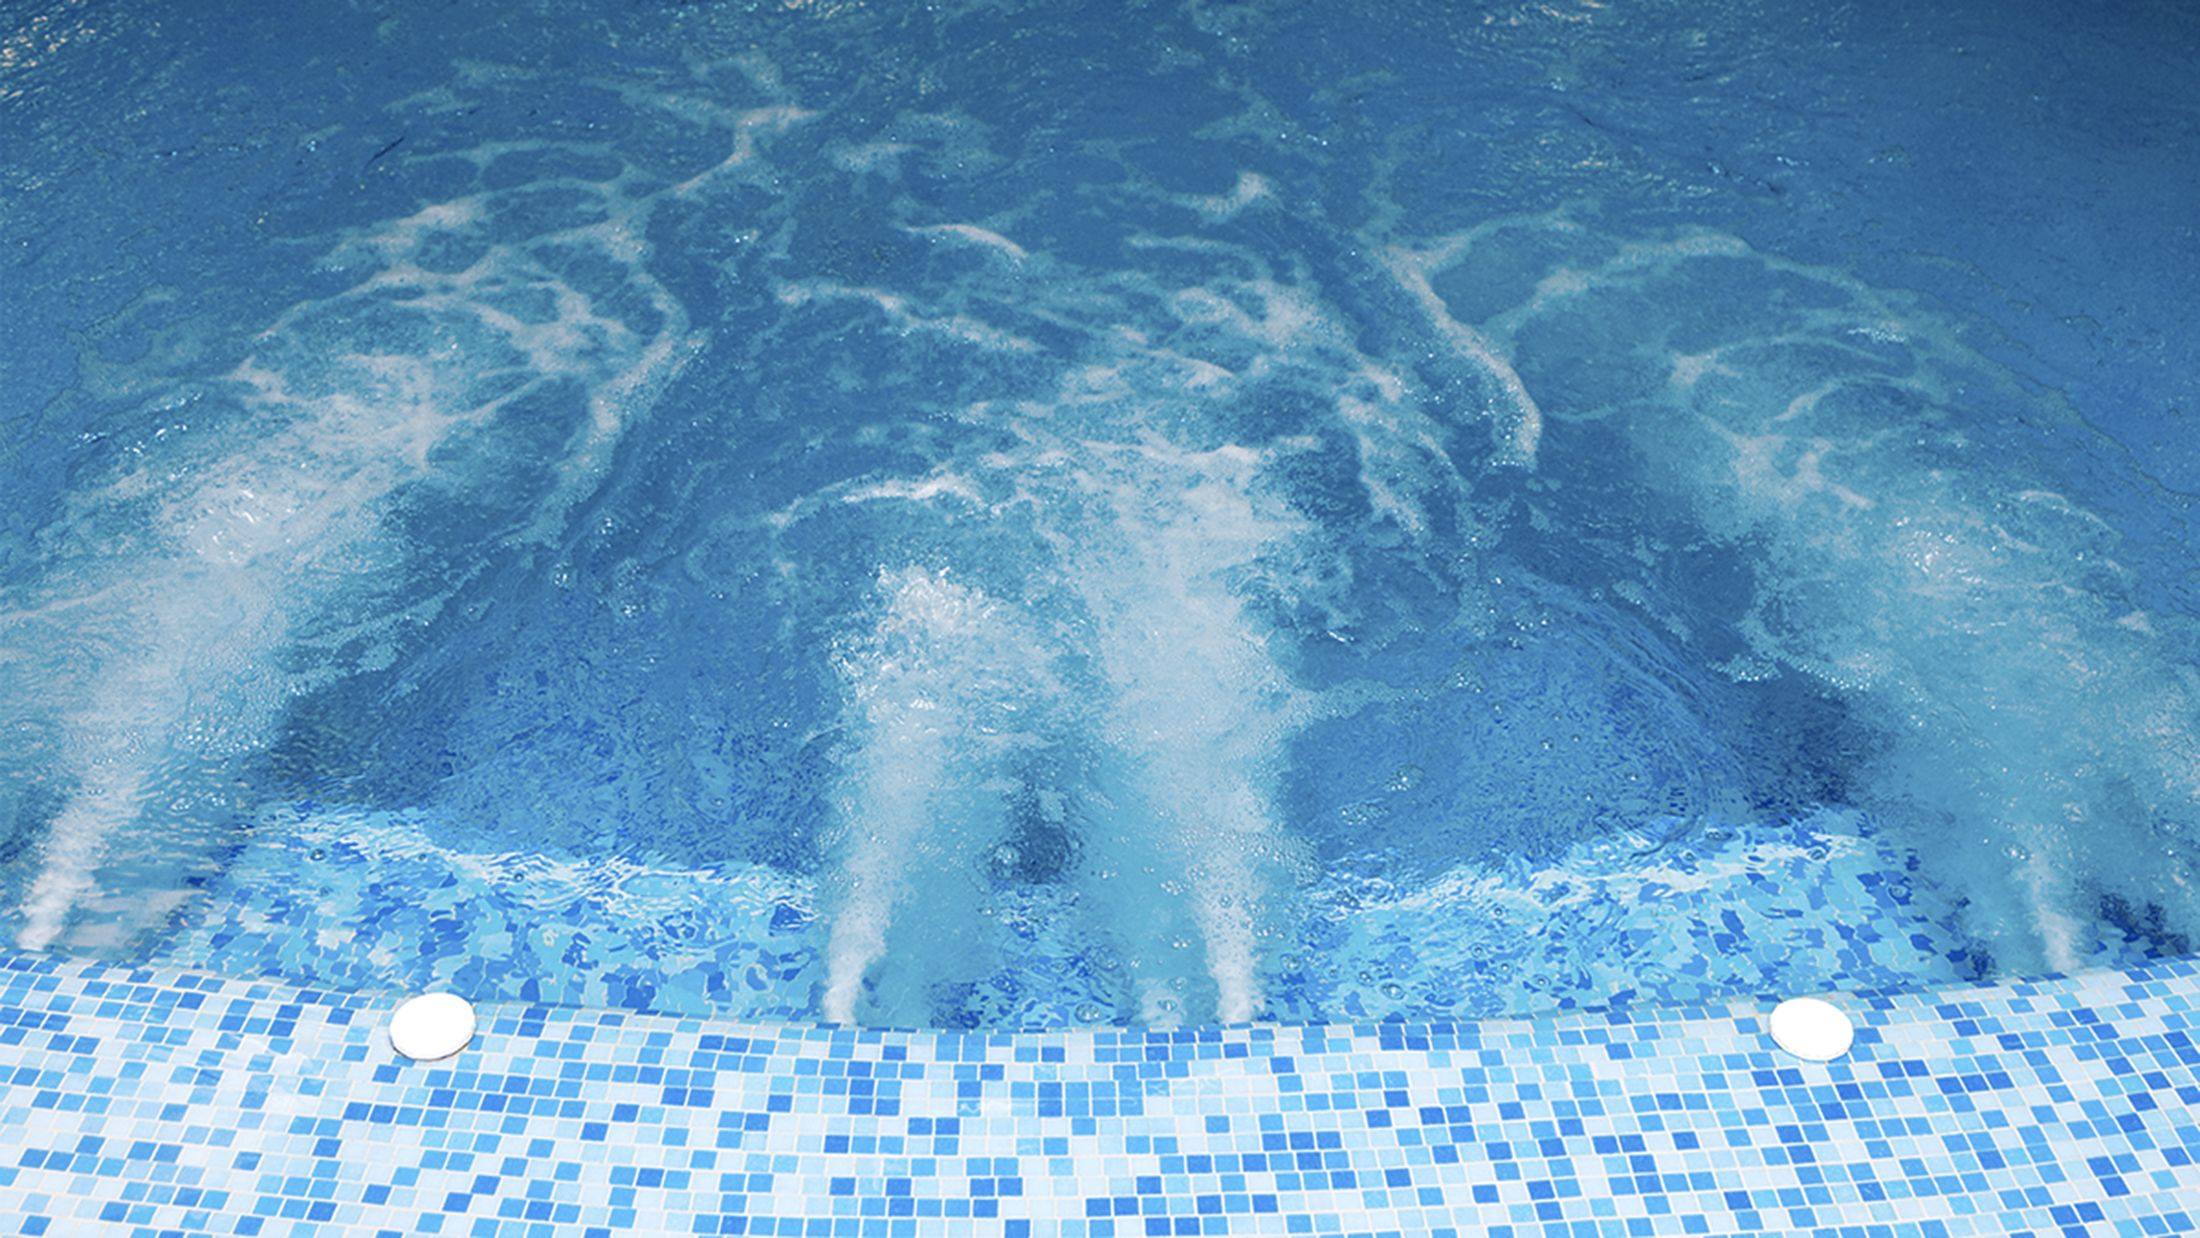 300063_swimming-pool_shutterstock_32082511_modified-Hybris